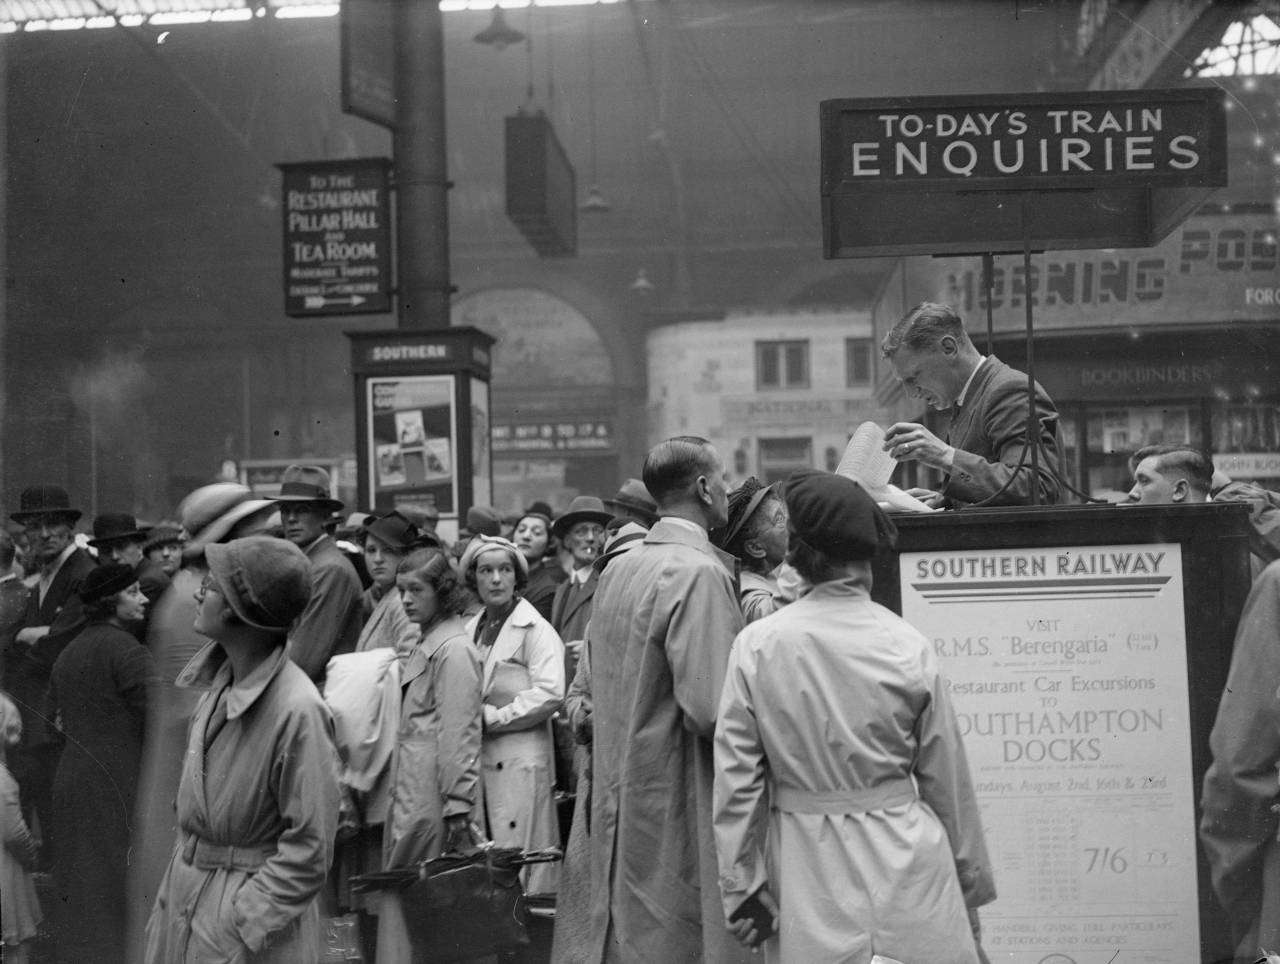 August 1936: Crowds at the Enquiry Desk in Waterloo Station, London. (Photo by Harry Shepherd/Fox Photos/Getty Images)